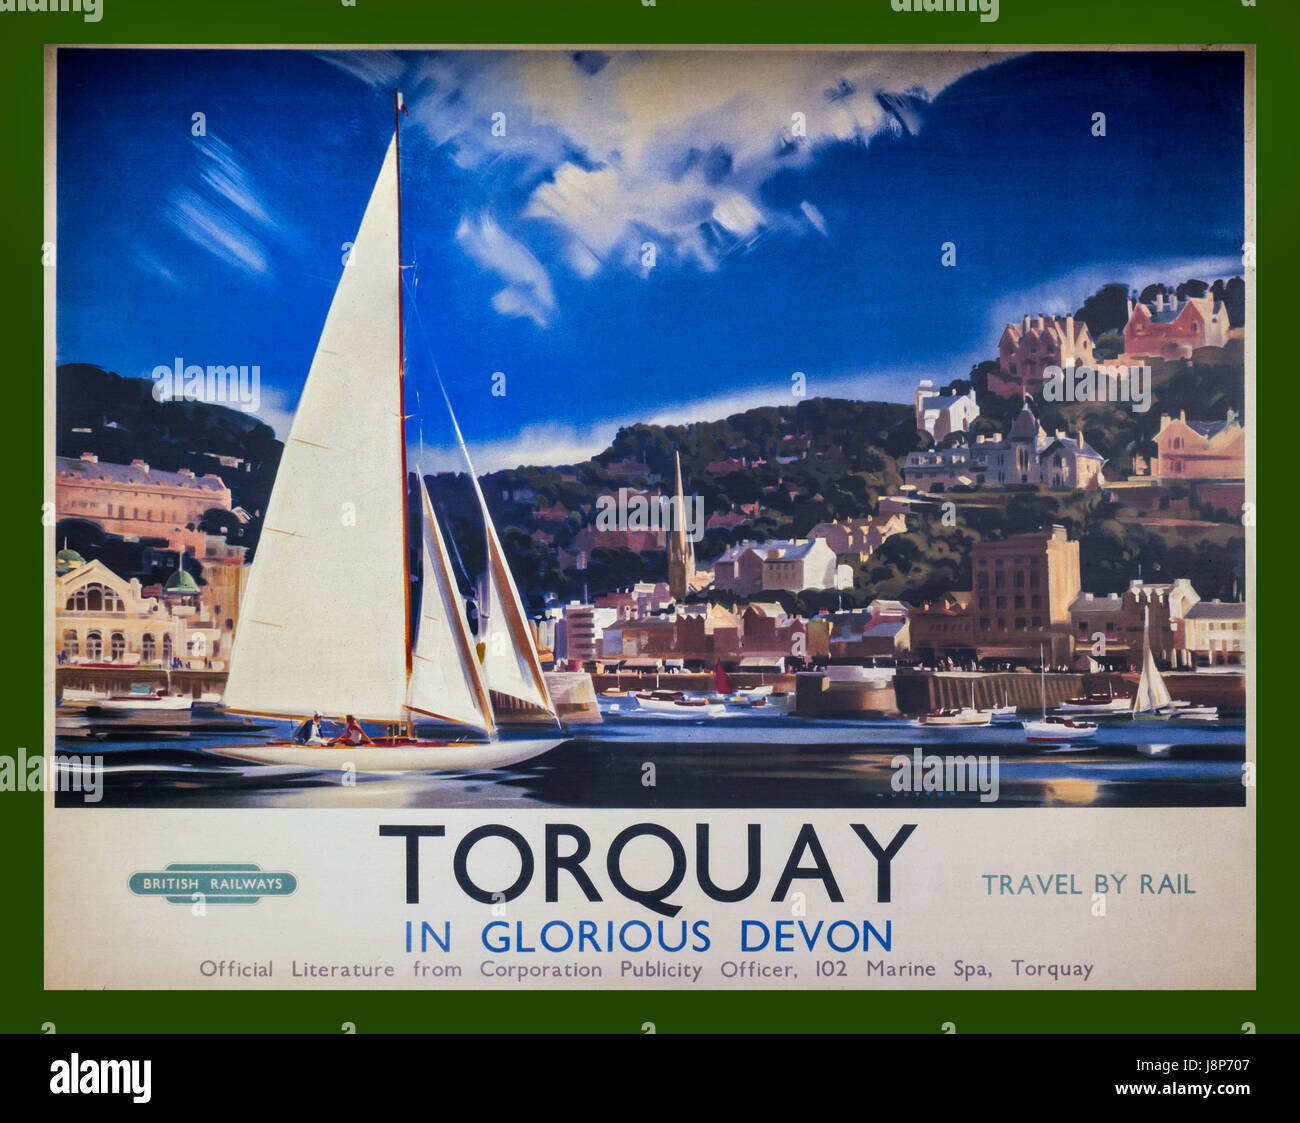 Commit torquay railway vintage poster very grateful